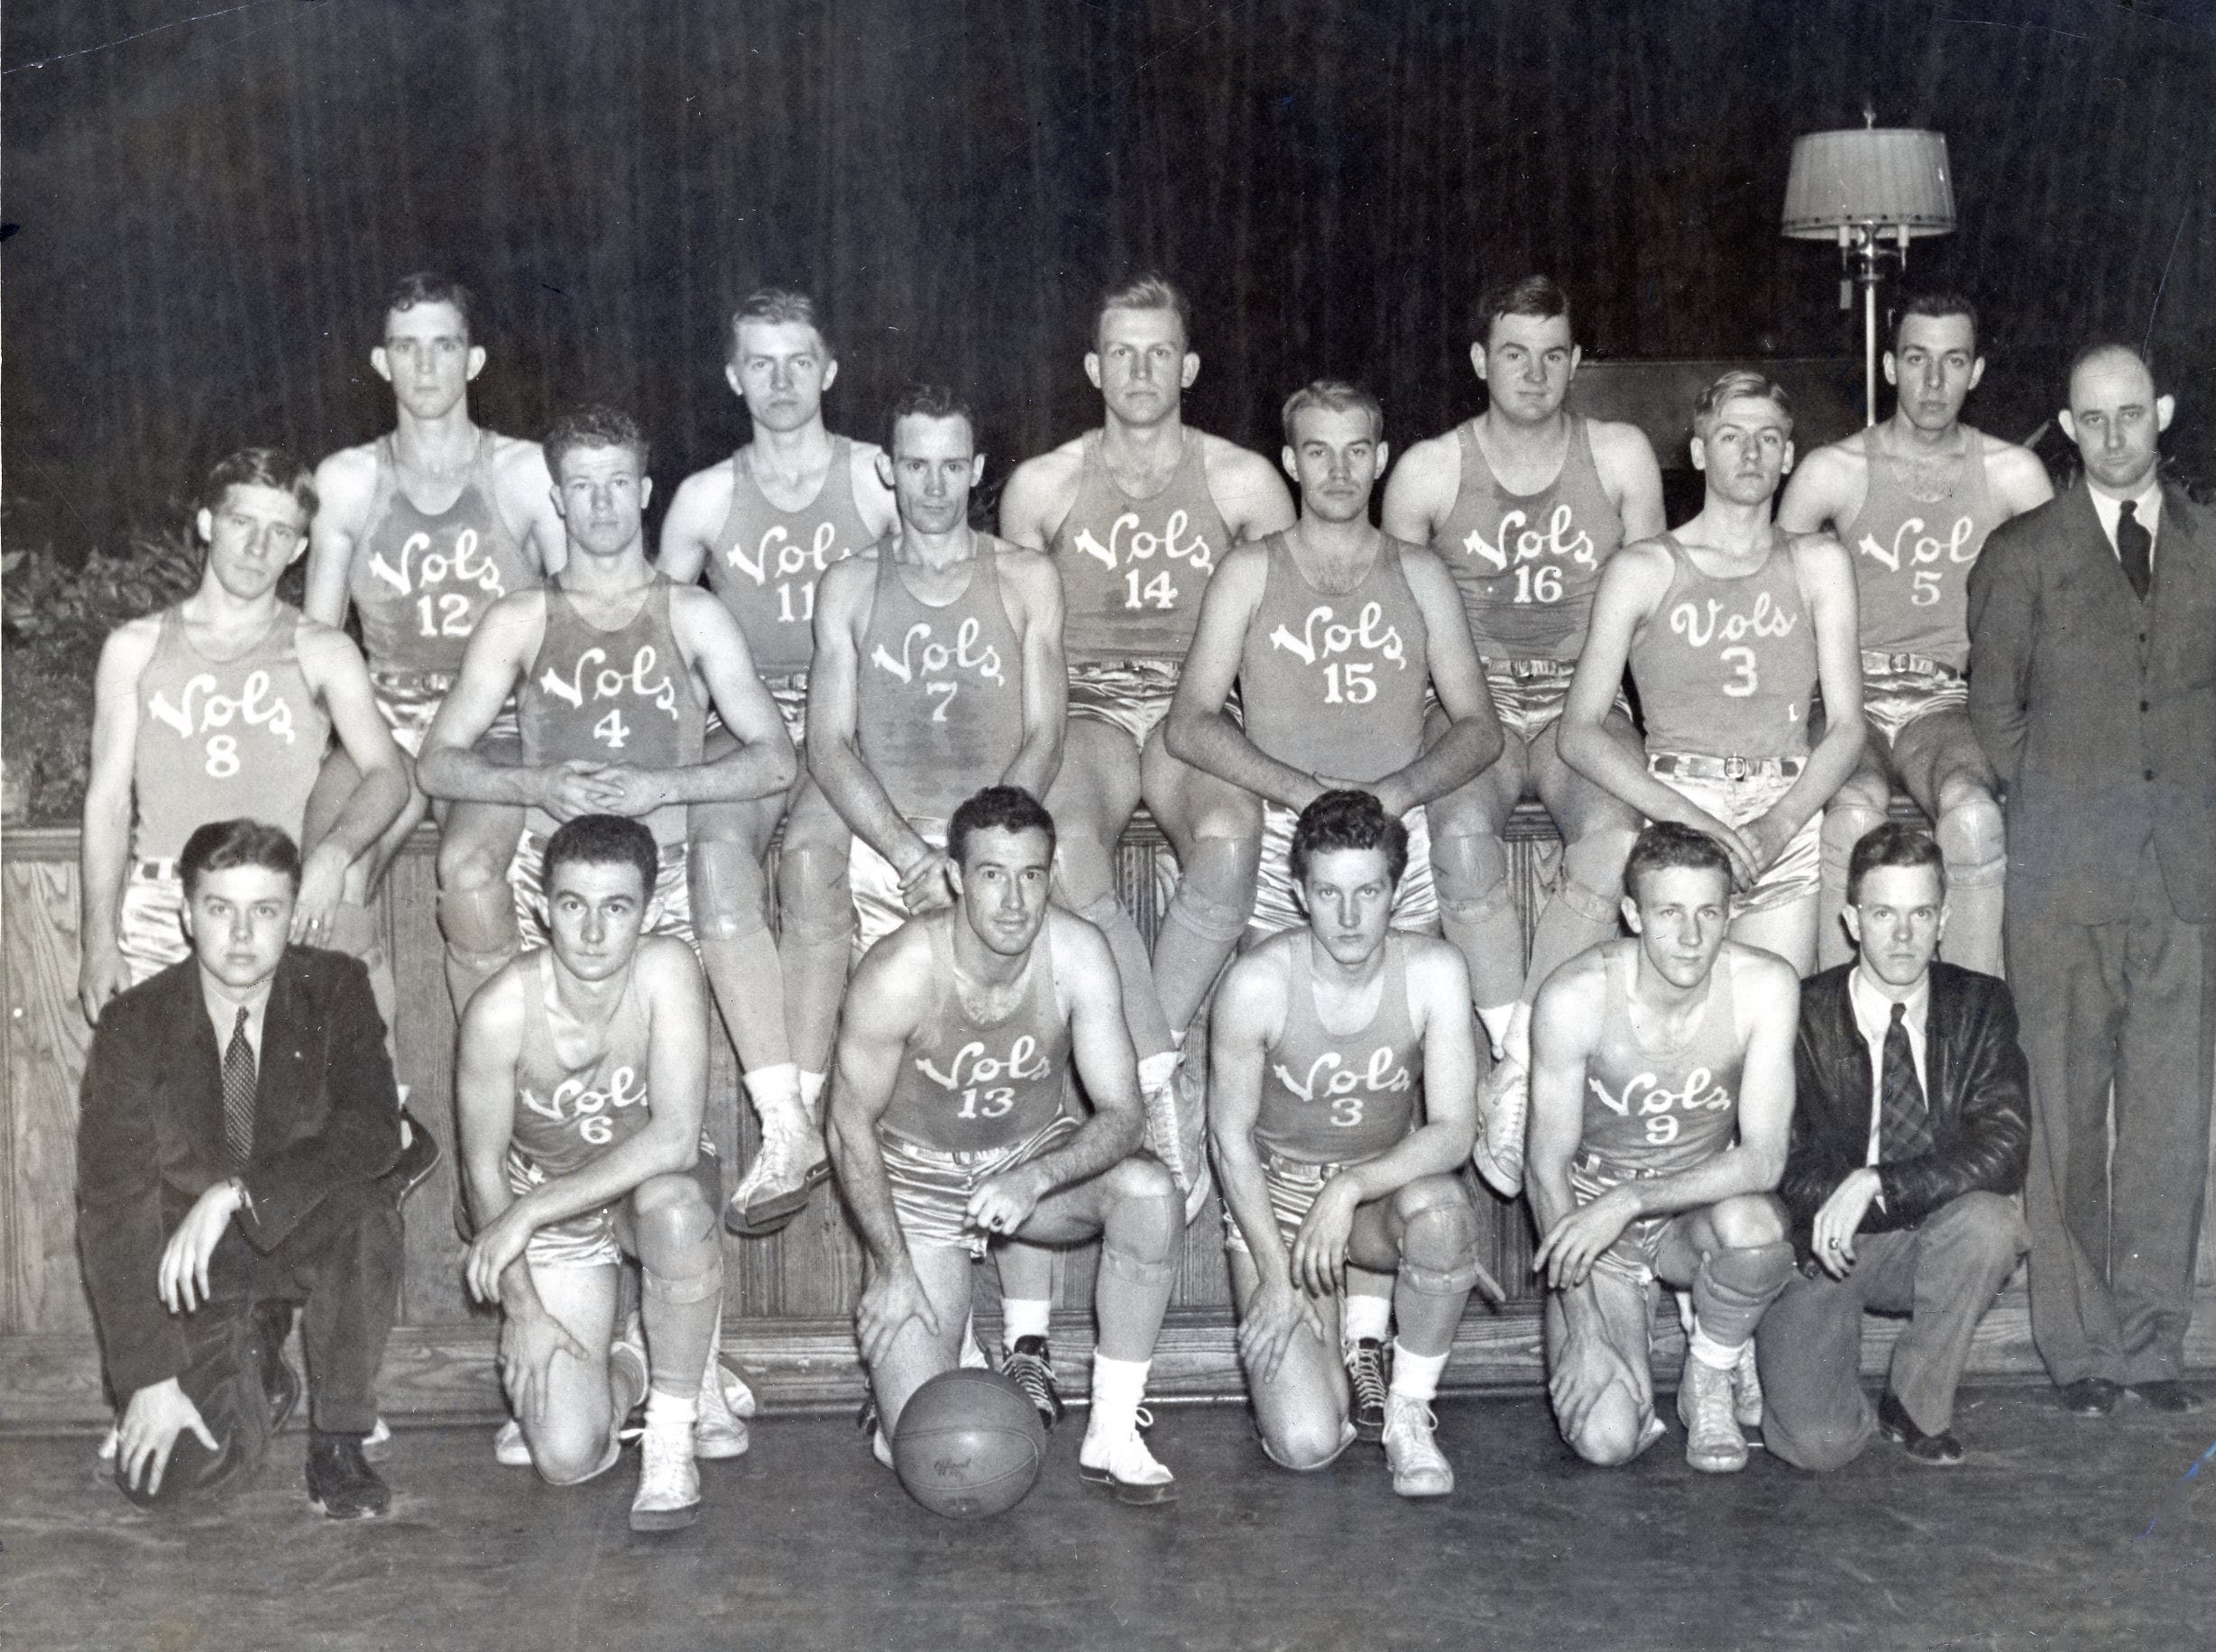 The UT Vols basketball team photo for the 1937-1938 year.